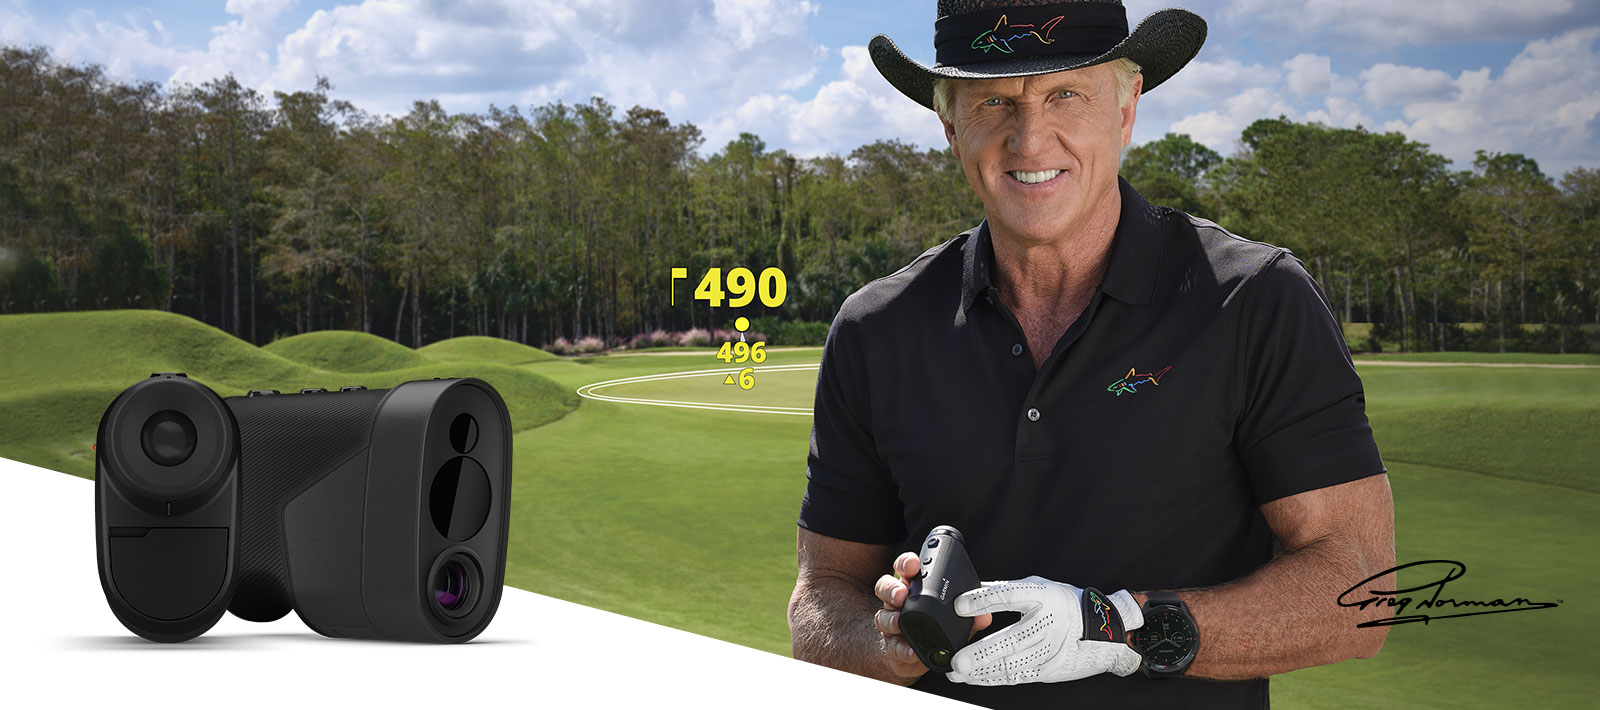 Approach Z82 - Golf Laser Range Finder with GPS